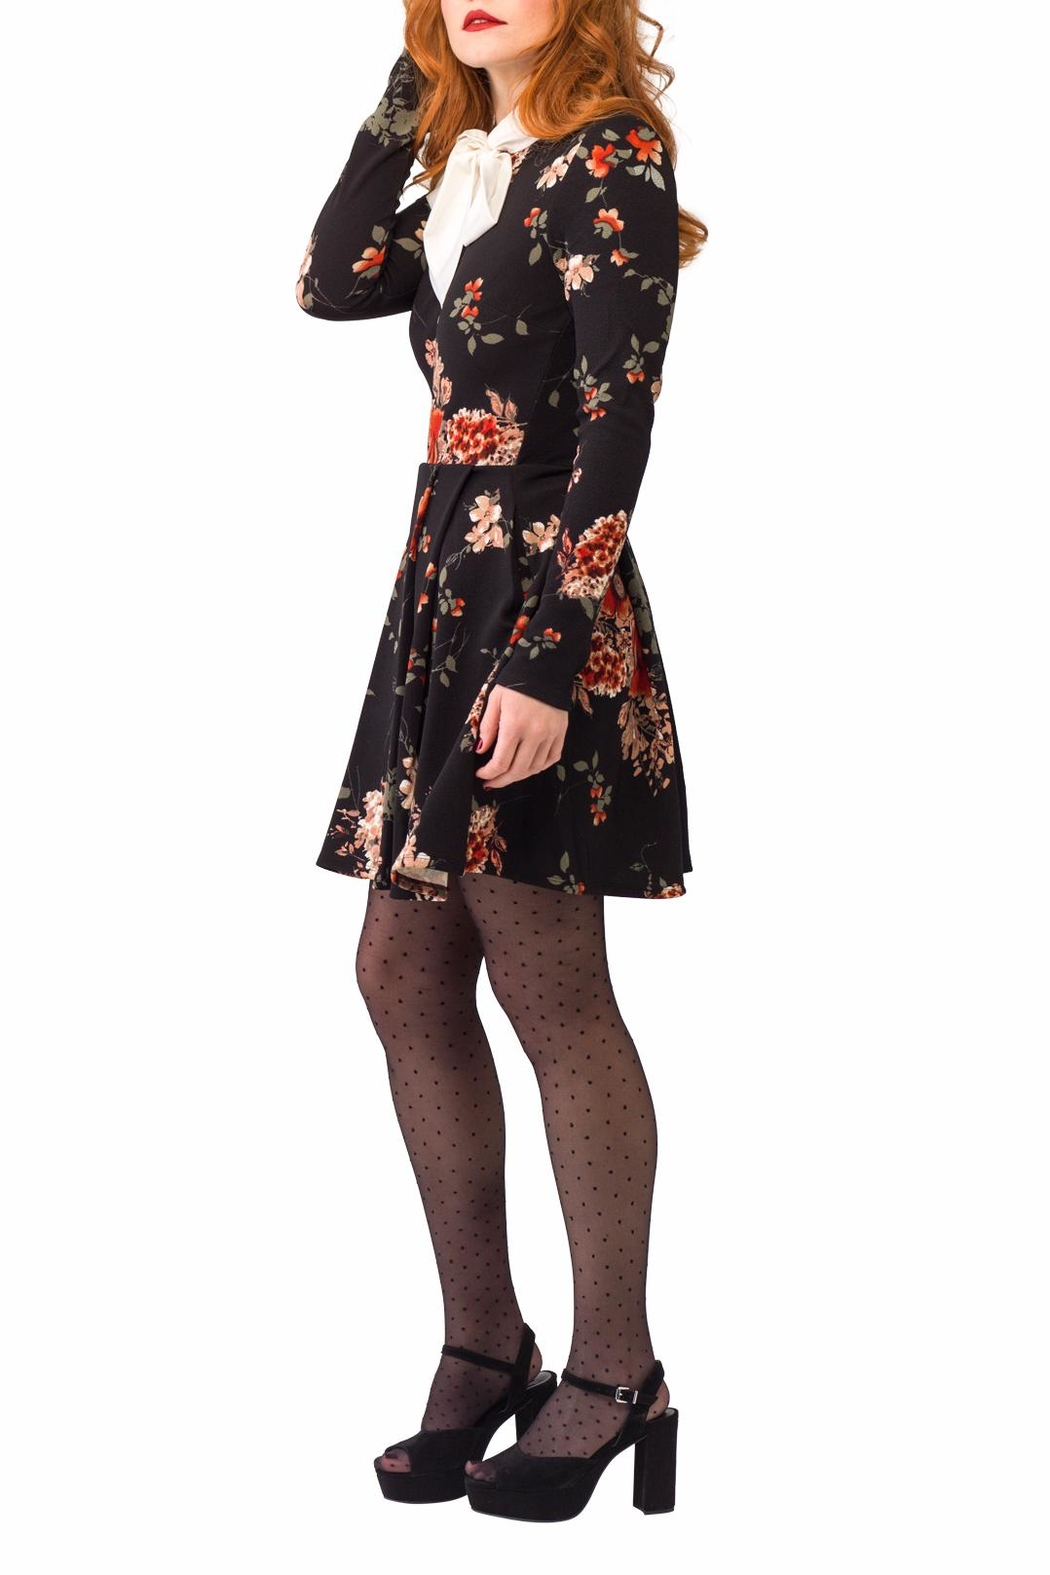 Smak Parlour Long-Sleeve Floral Dress - Front Full Image